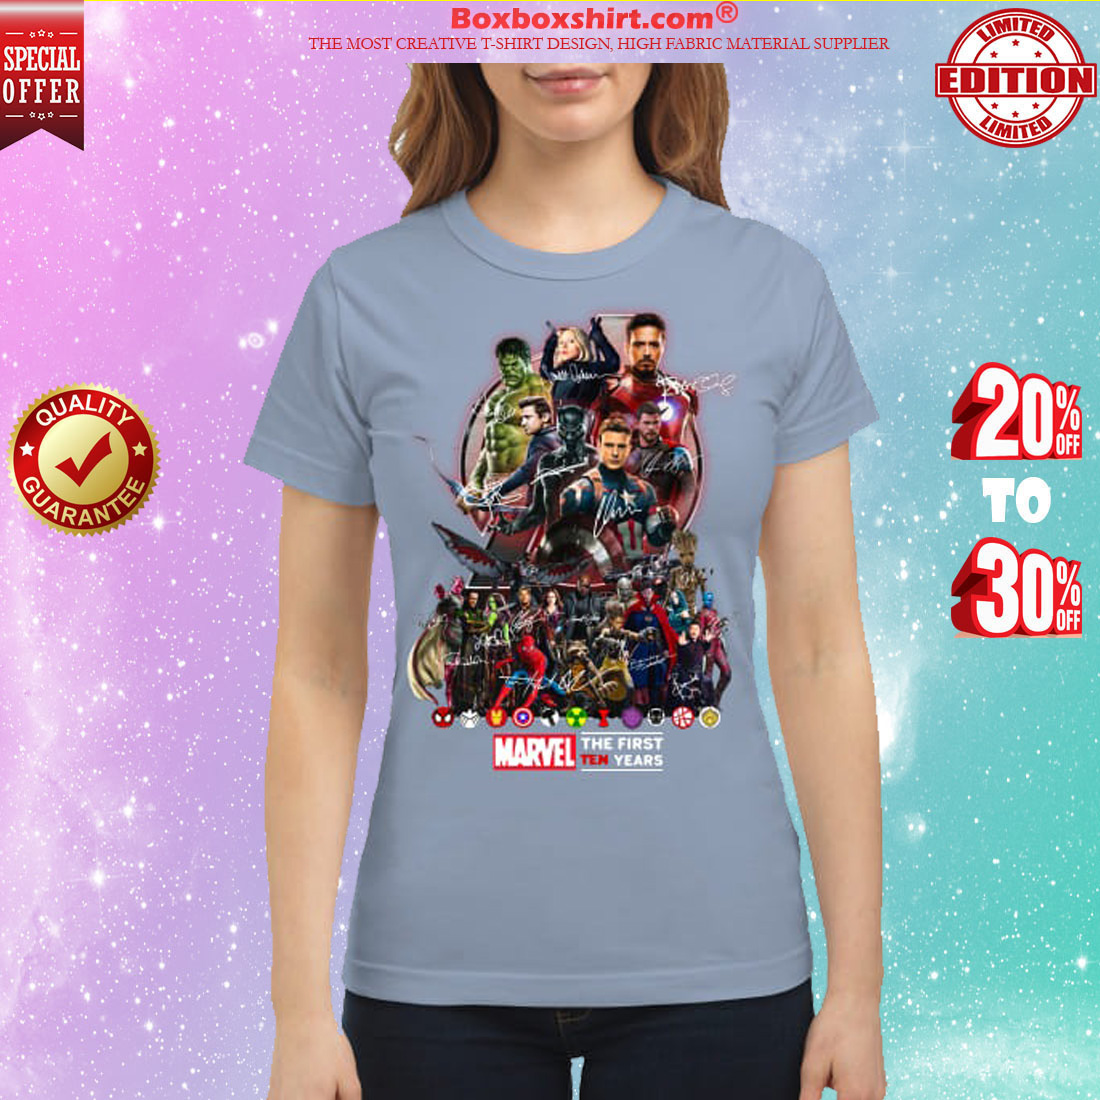 Marvel Avengers The first ten years classic shirt